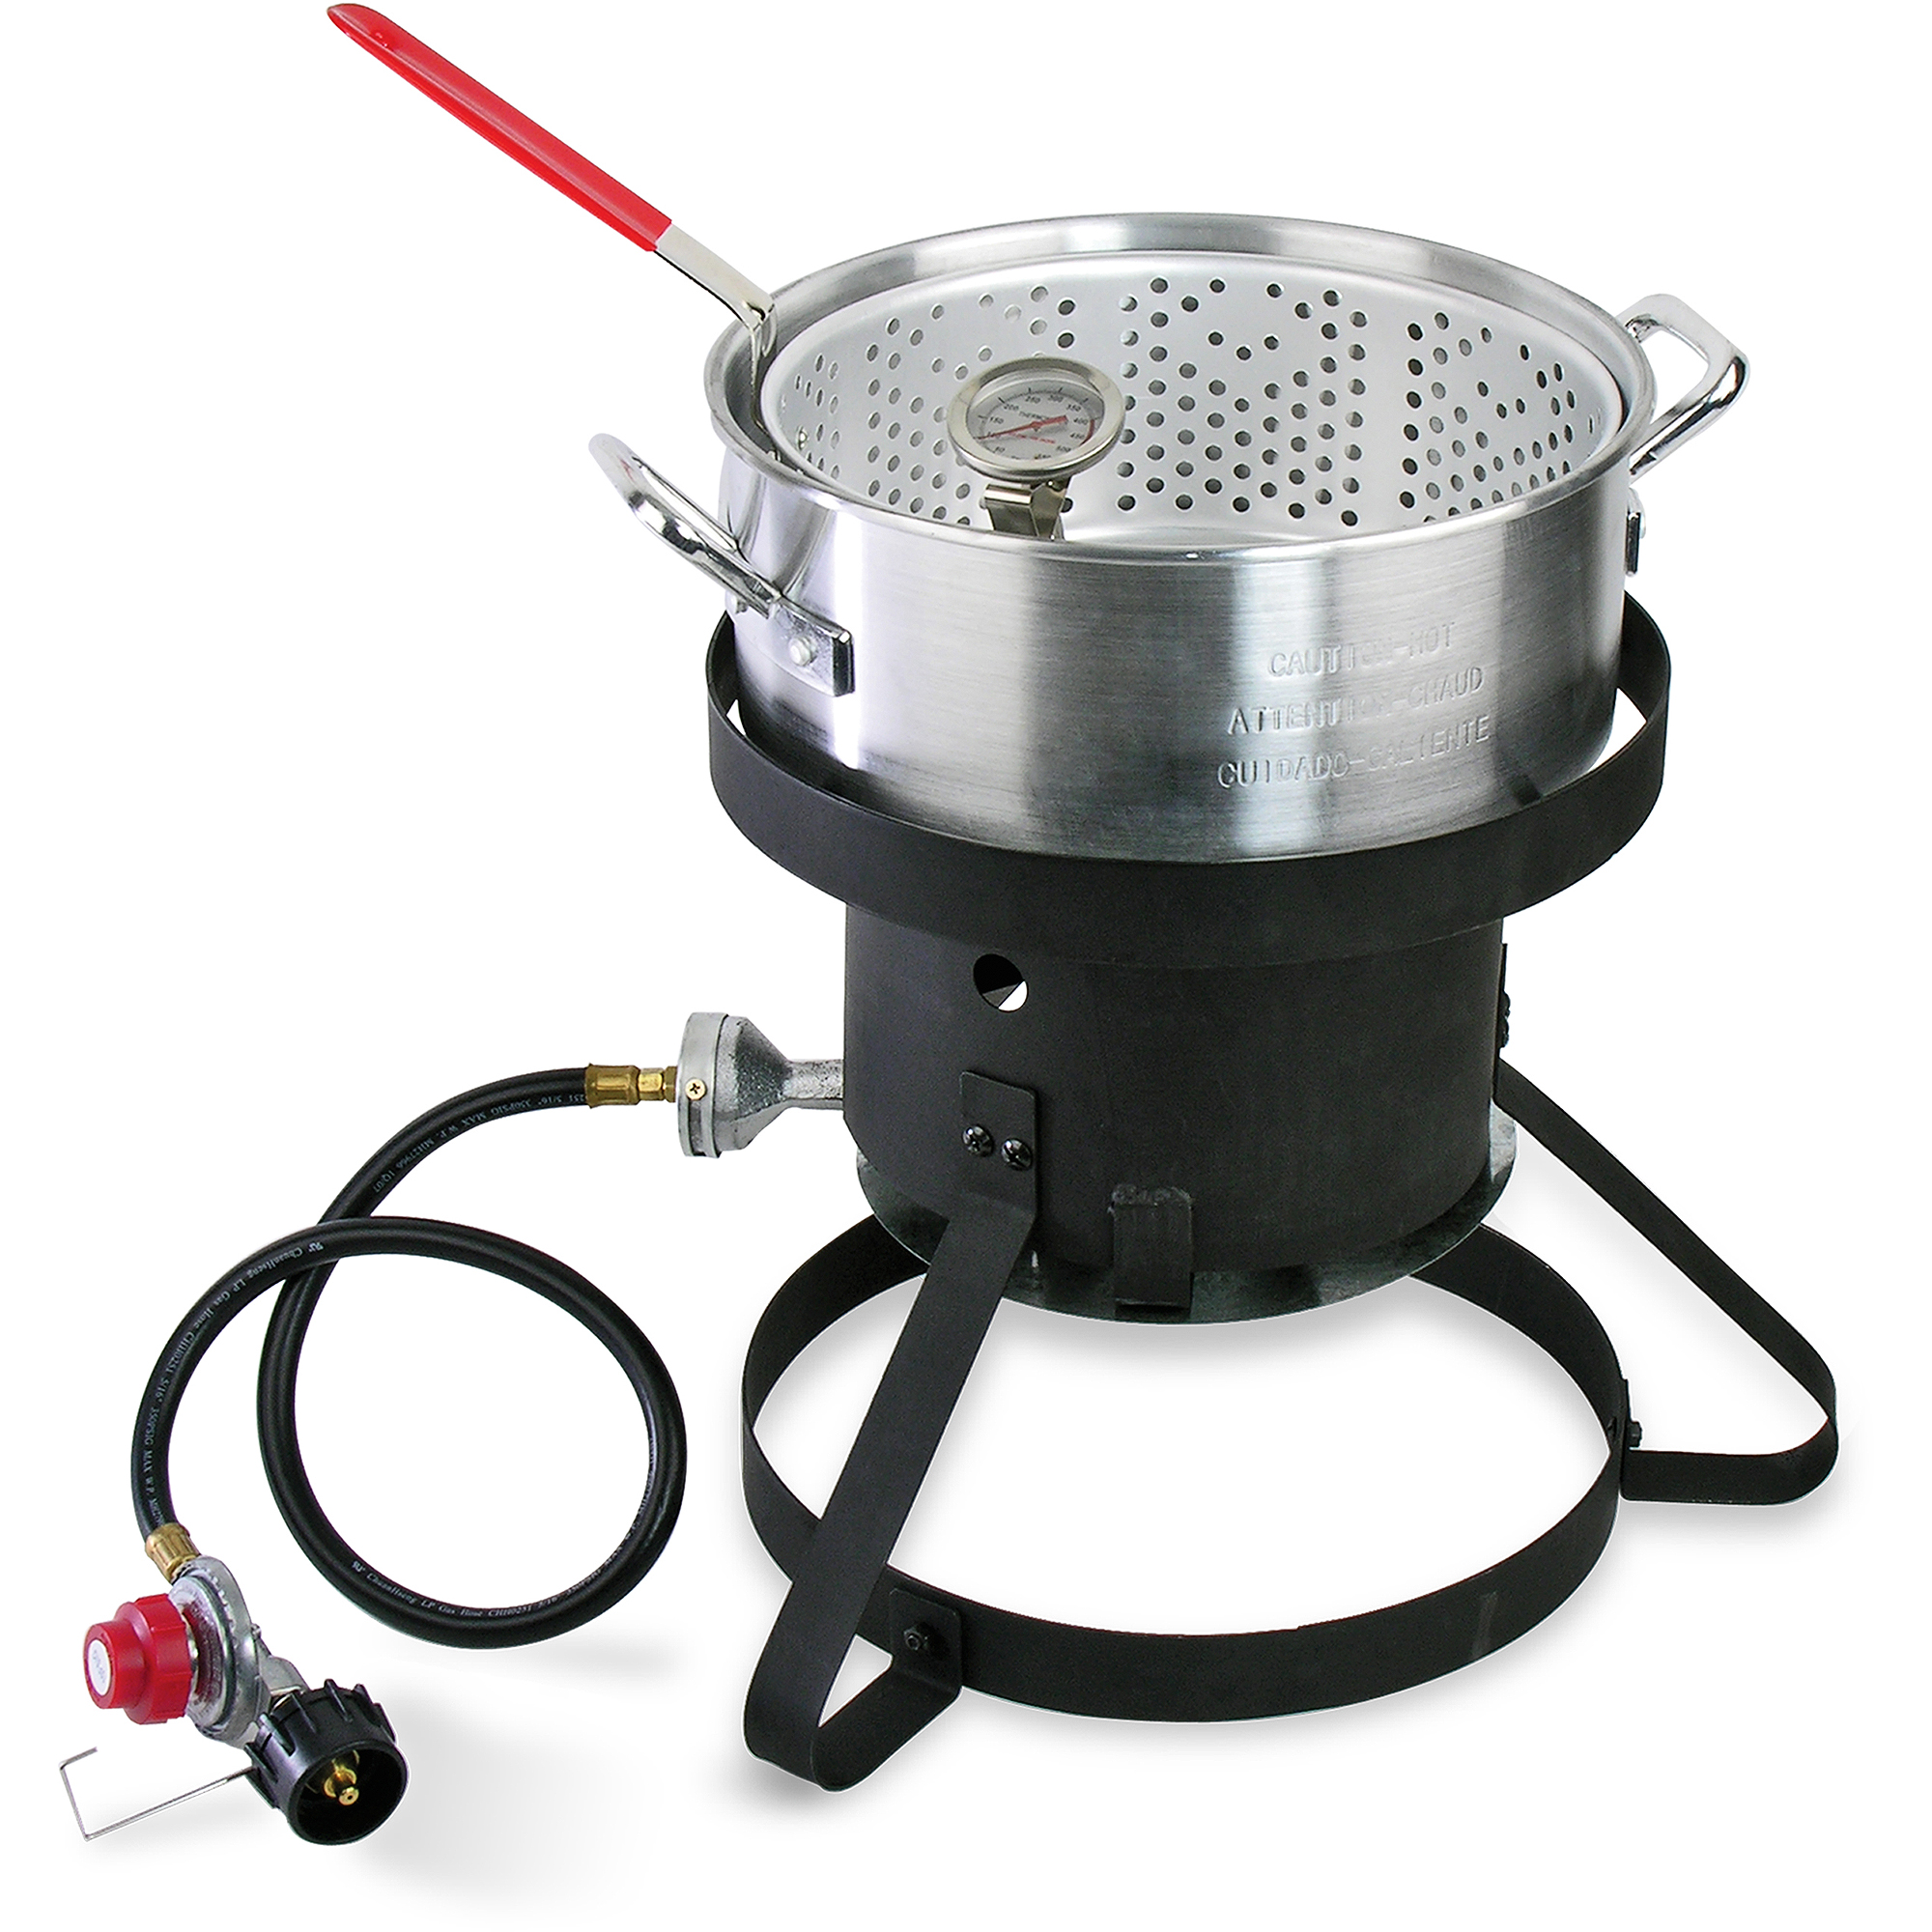 Cajun Injector 10 Quart Gas Fish Fryer Walmart Com